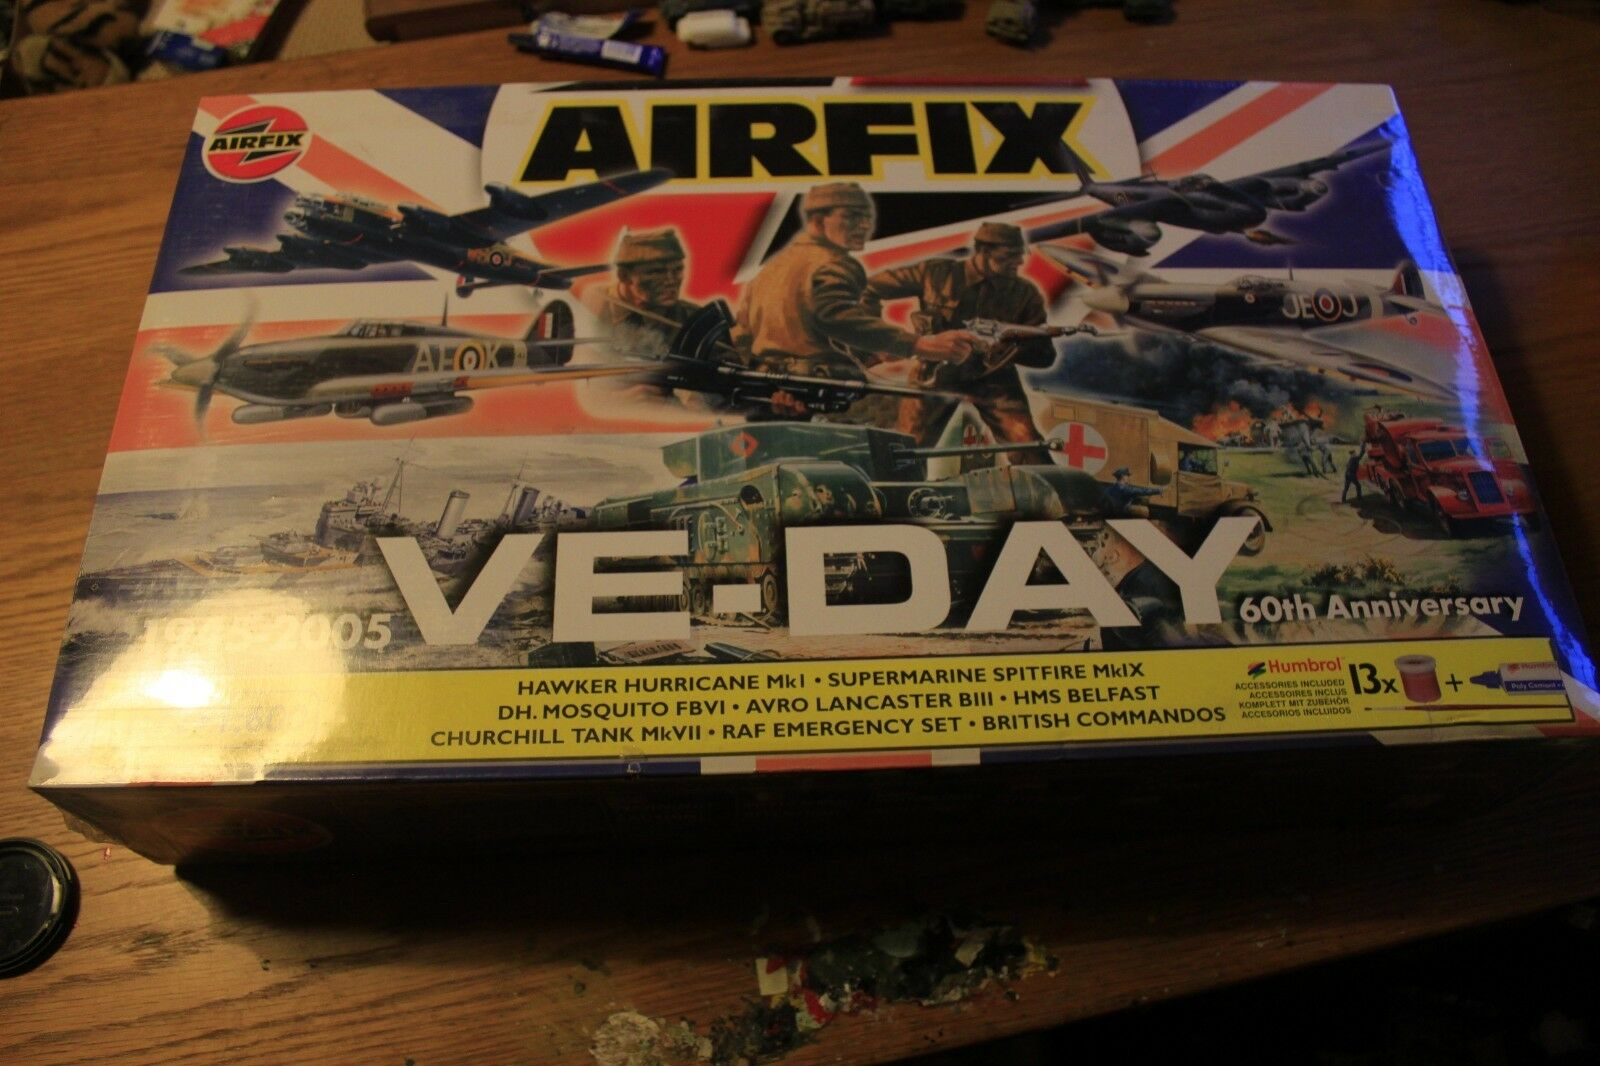 Airfix WW2 VE-DAY 60th Anniversary Set 1 72 Scale Model Kit